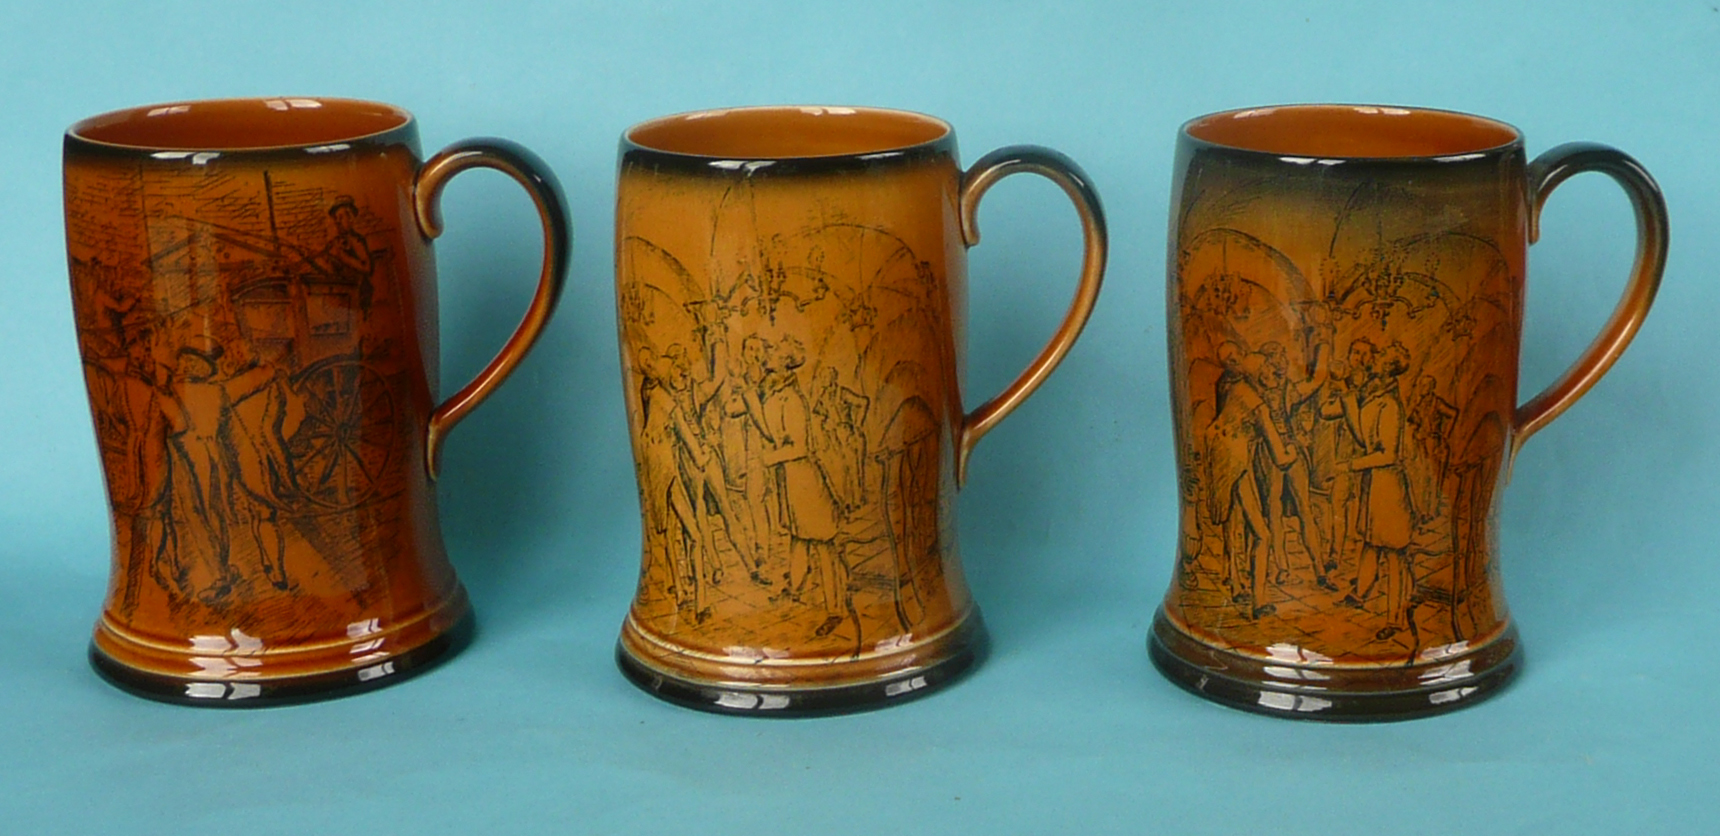 Lot 3 - A good Crown Devon musical mug to play Tavern in the Town, 134mm, another similar mug reverse